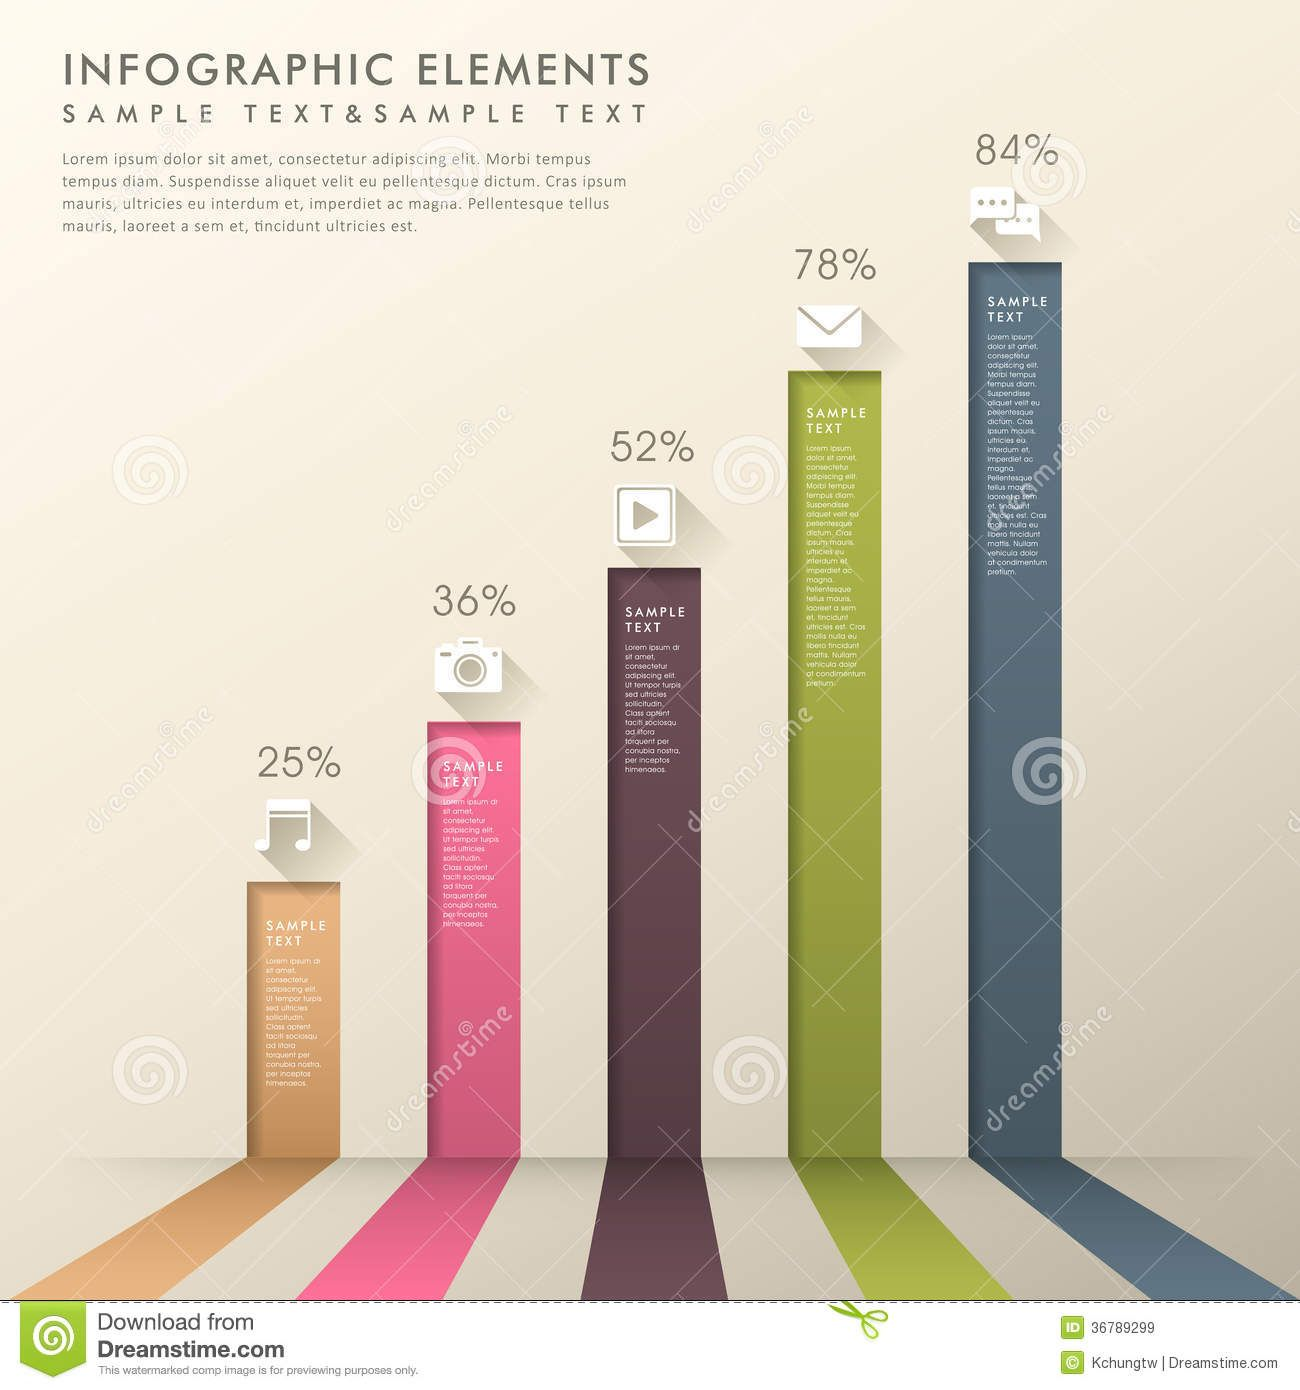 Creative bar chart designs google search pinteres creative bar chart designs google search more nvjuhfo Choice Image